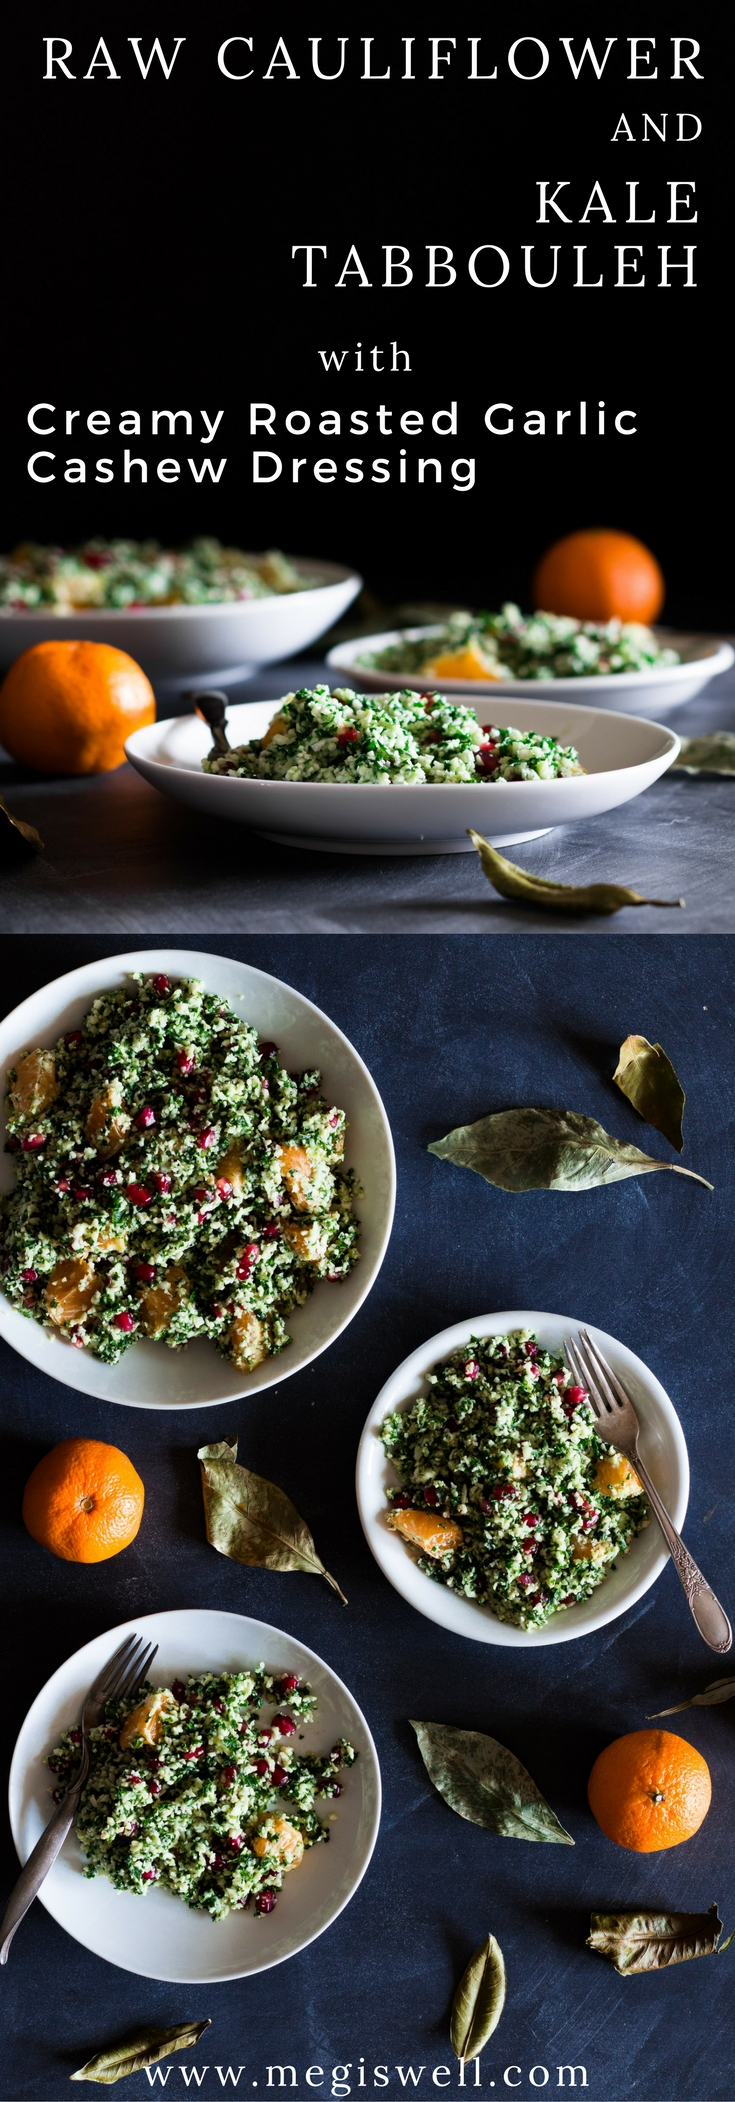 Raw Cauliflower and Kale Tabbouleh with Creamy Roasted Garlic Cashew Dressing is a refreshing and healthy raw salad that is deliciously addicting! #rawvegan #diet #pomegranates #citrus | www.megiswell.com